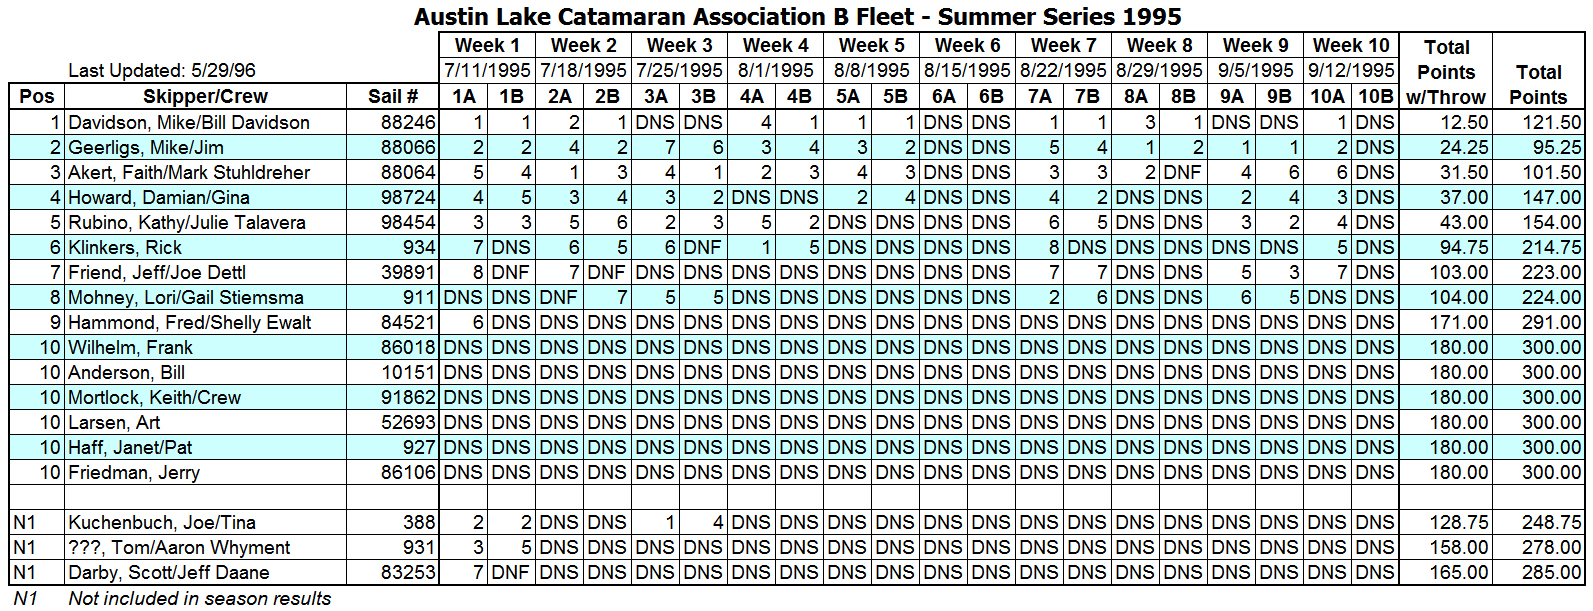 1995 Summer B Fleet Results